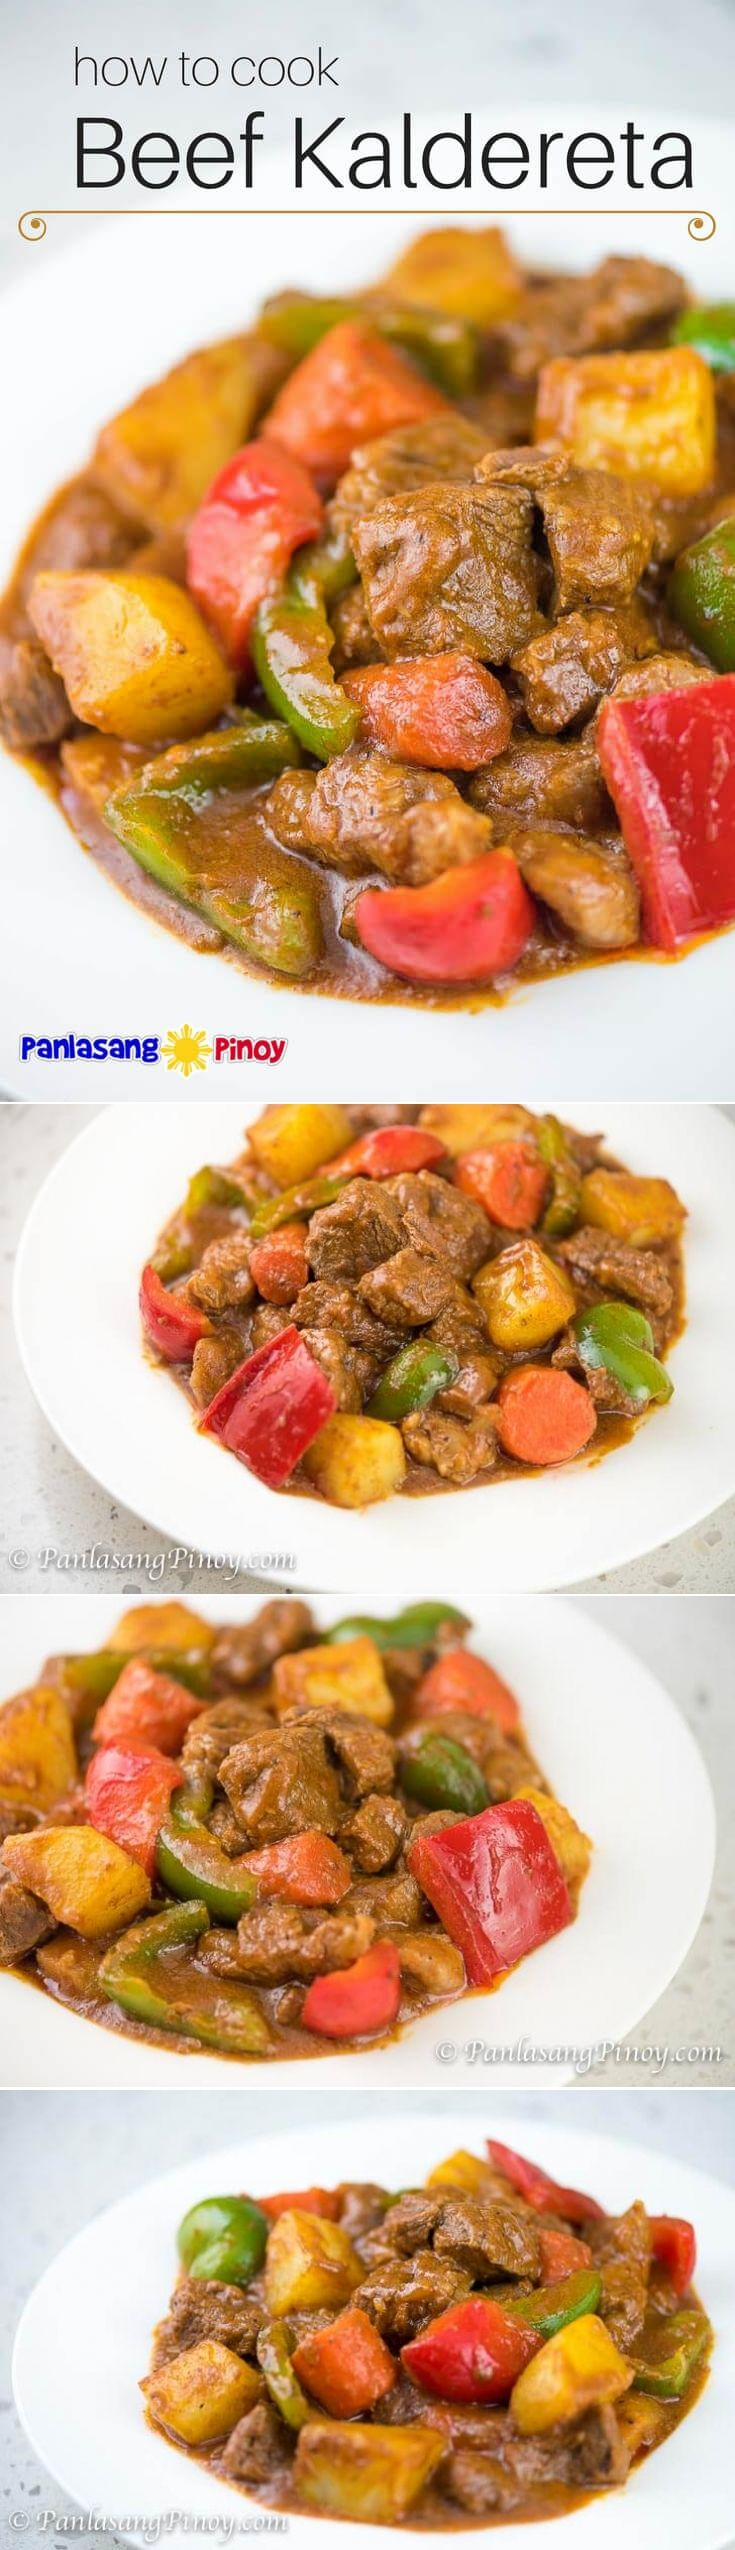 Best 25 filipino recipes ideas on pinterest filipino food how to cook beef kaldereta forumfinder Gallery